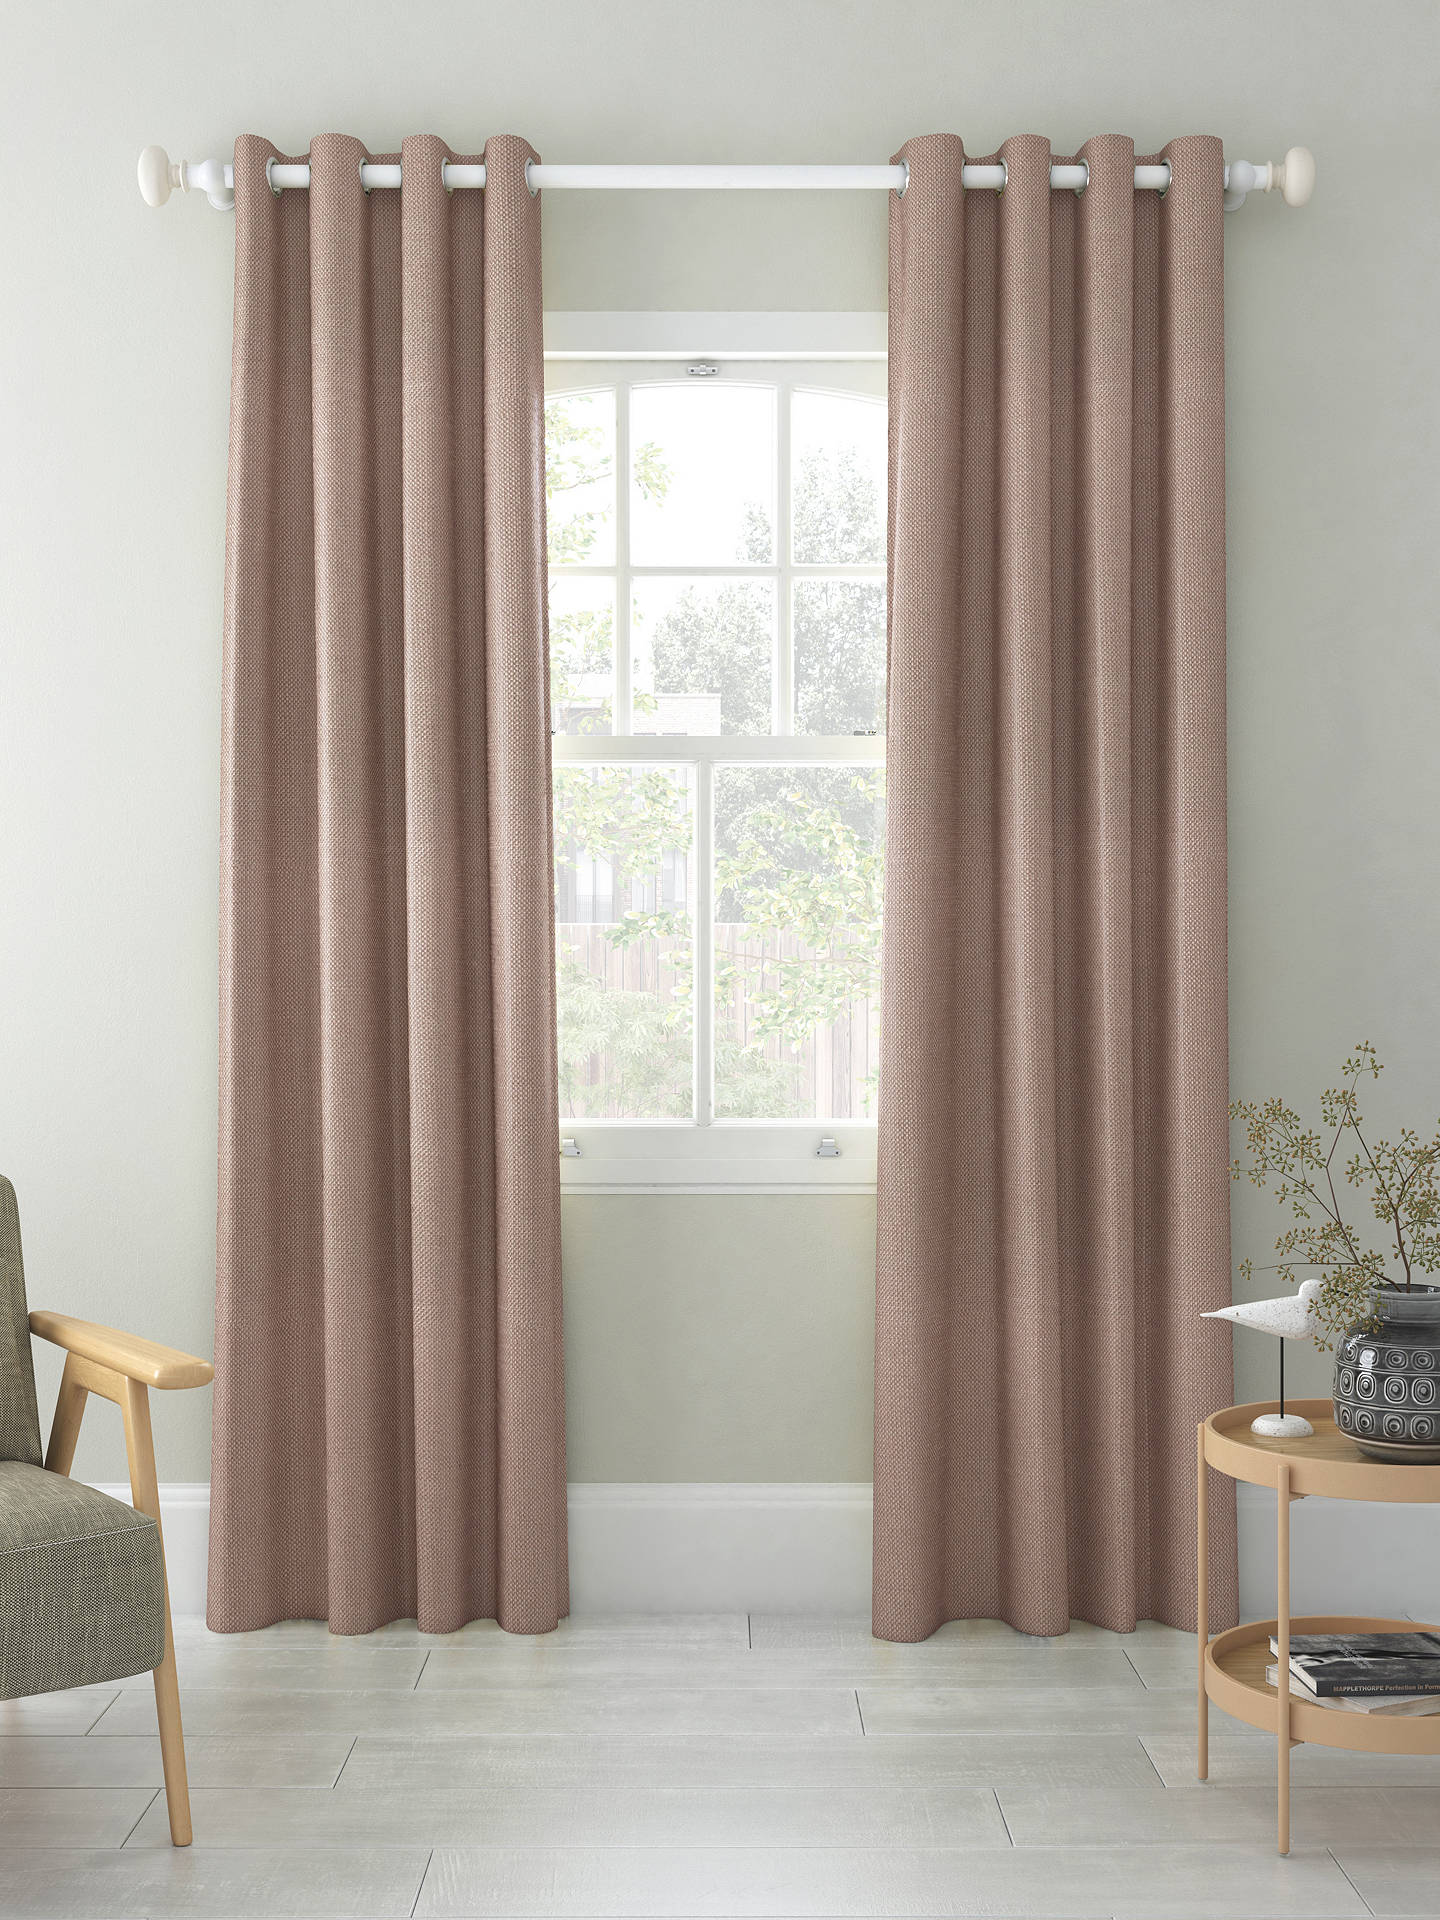 Buy John Lewis & Partners Basket Weave Pair Blackout Lined Eyelet Curtains, Mocha, W228 x Drop 228cm Online at johnlewis.com